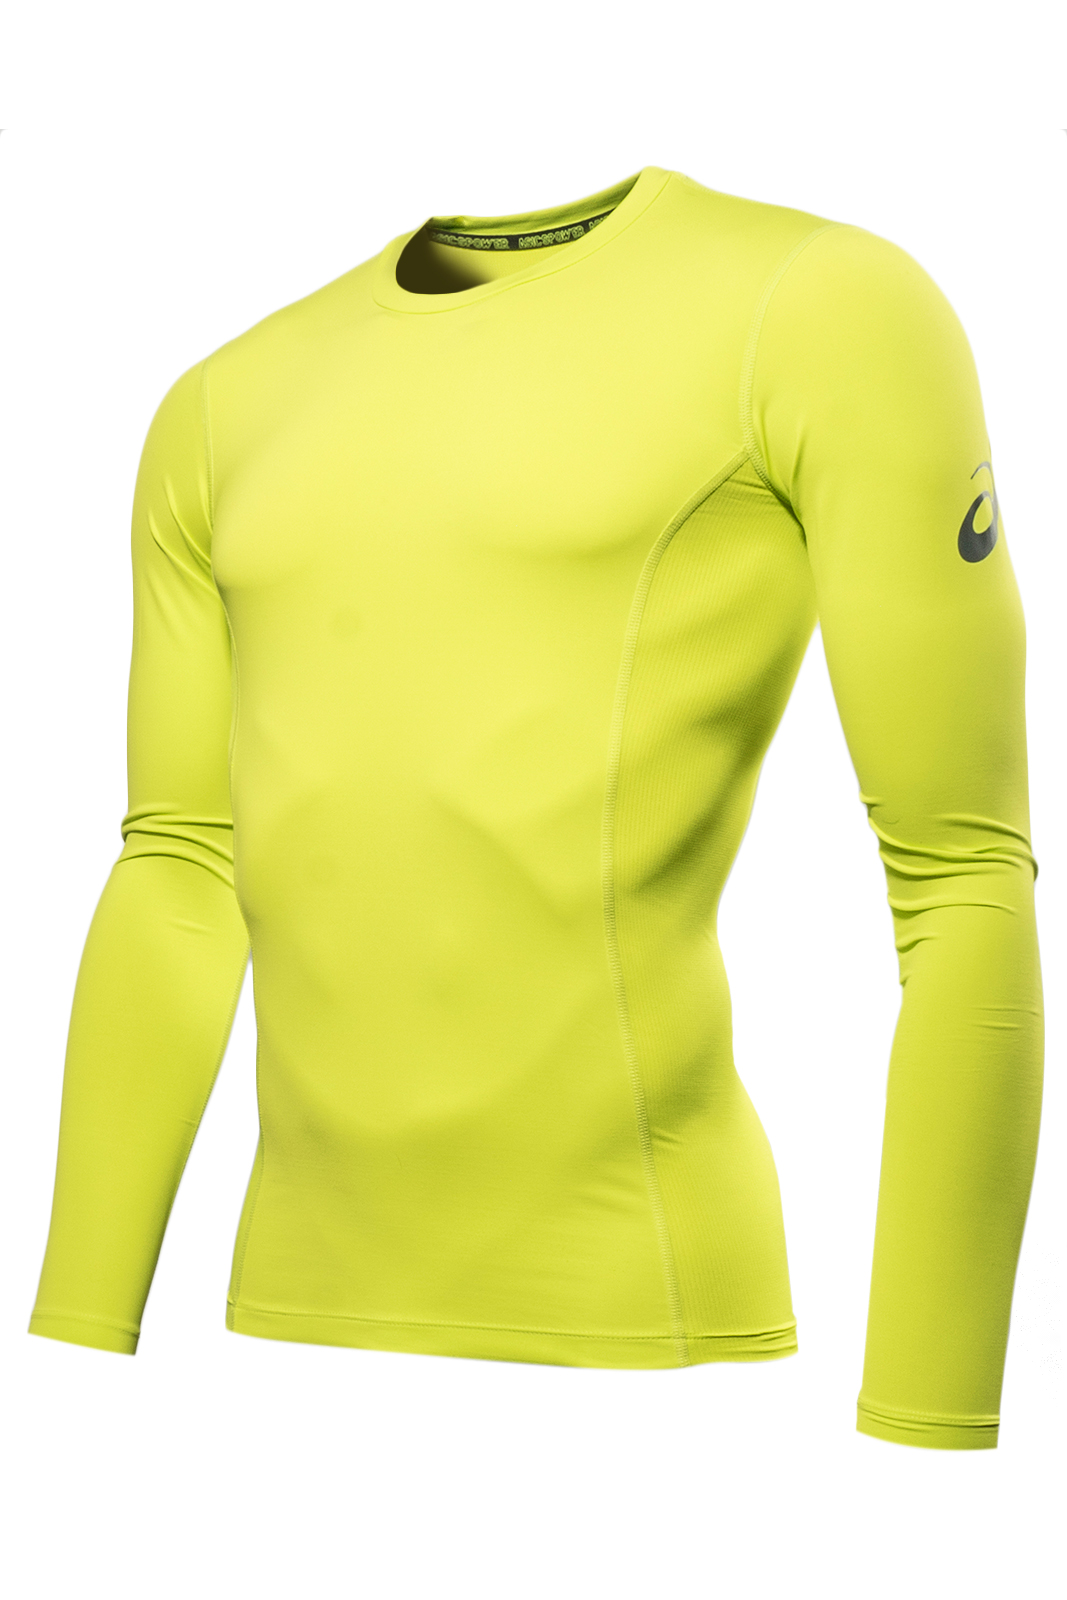 Male Longsleve ASICS 144476-0432 sports and entertainment for men available from 10 11 yellow sports long sleeve men 144476 0432